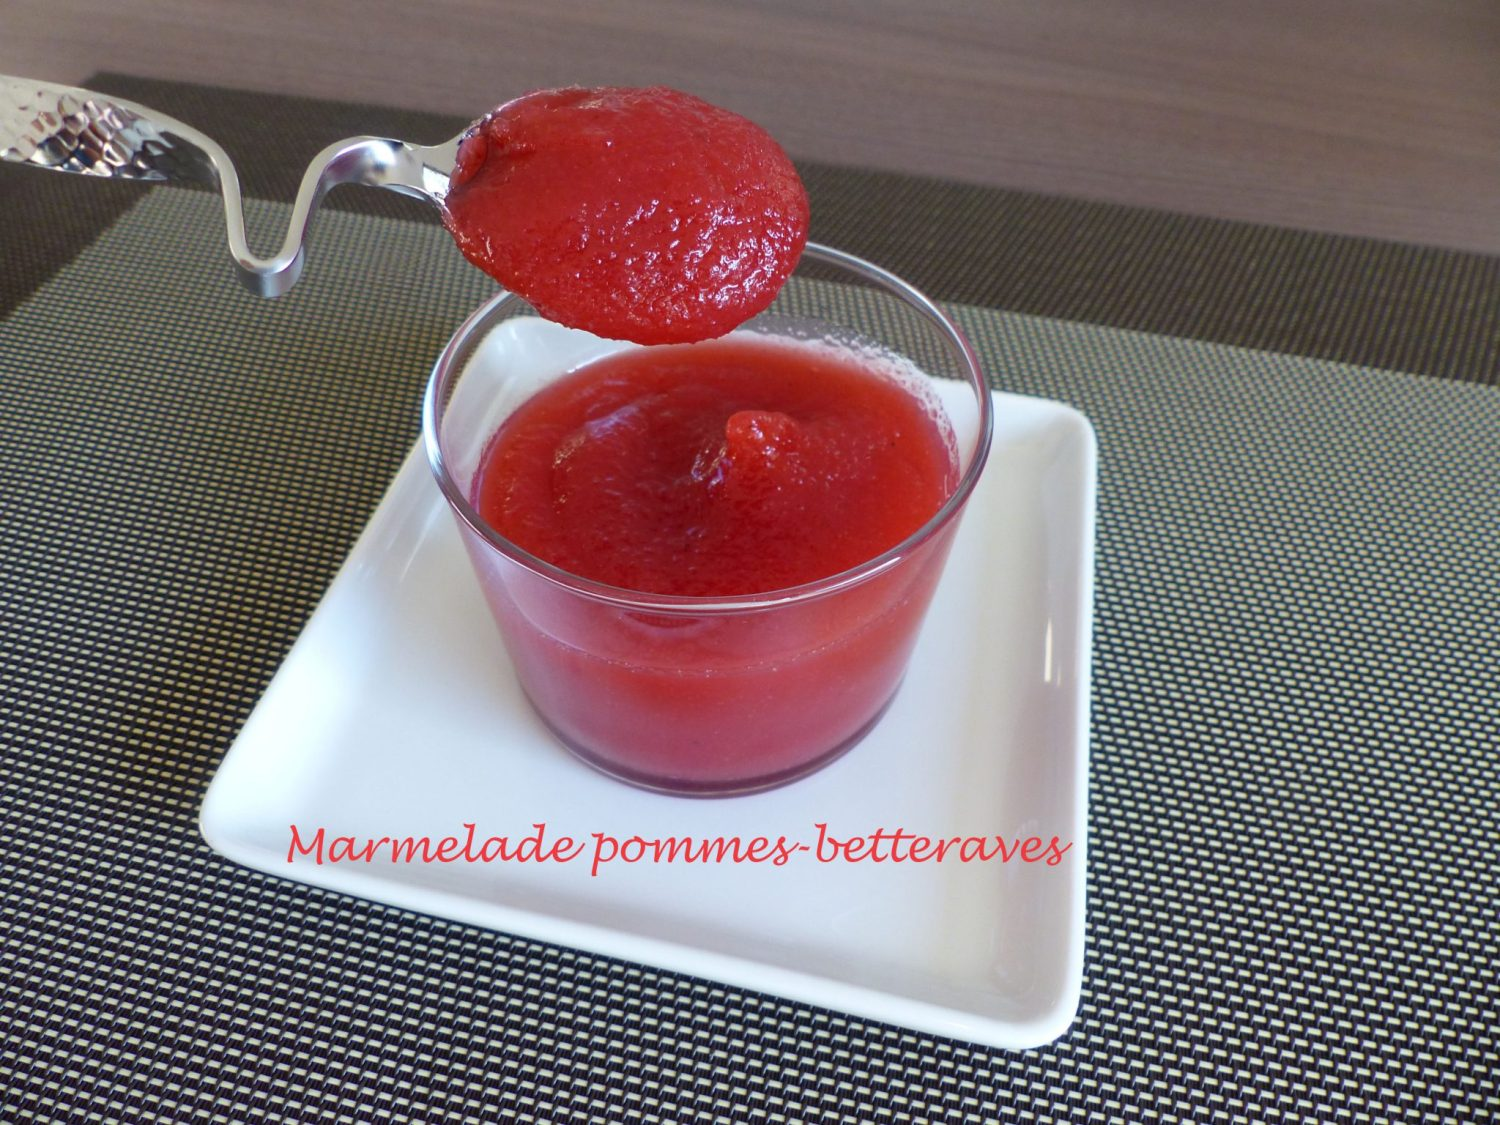 Marmelade pommes-betteraves P1050999